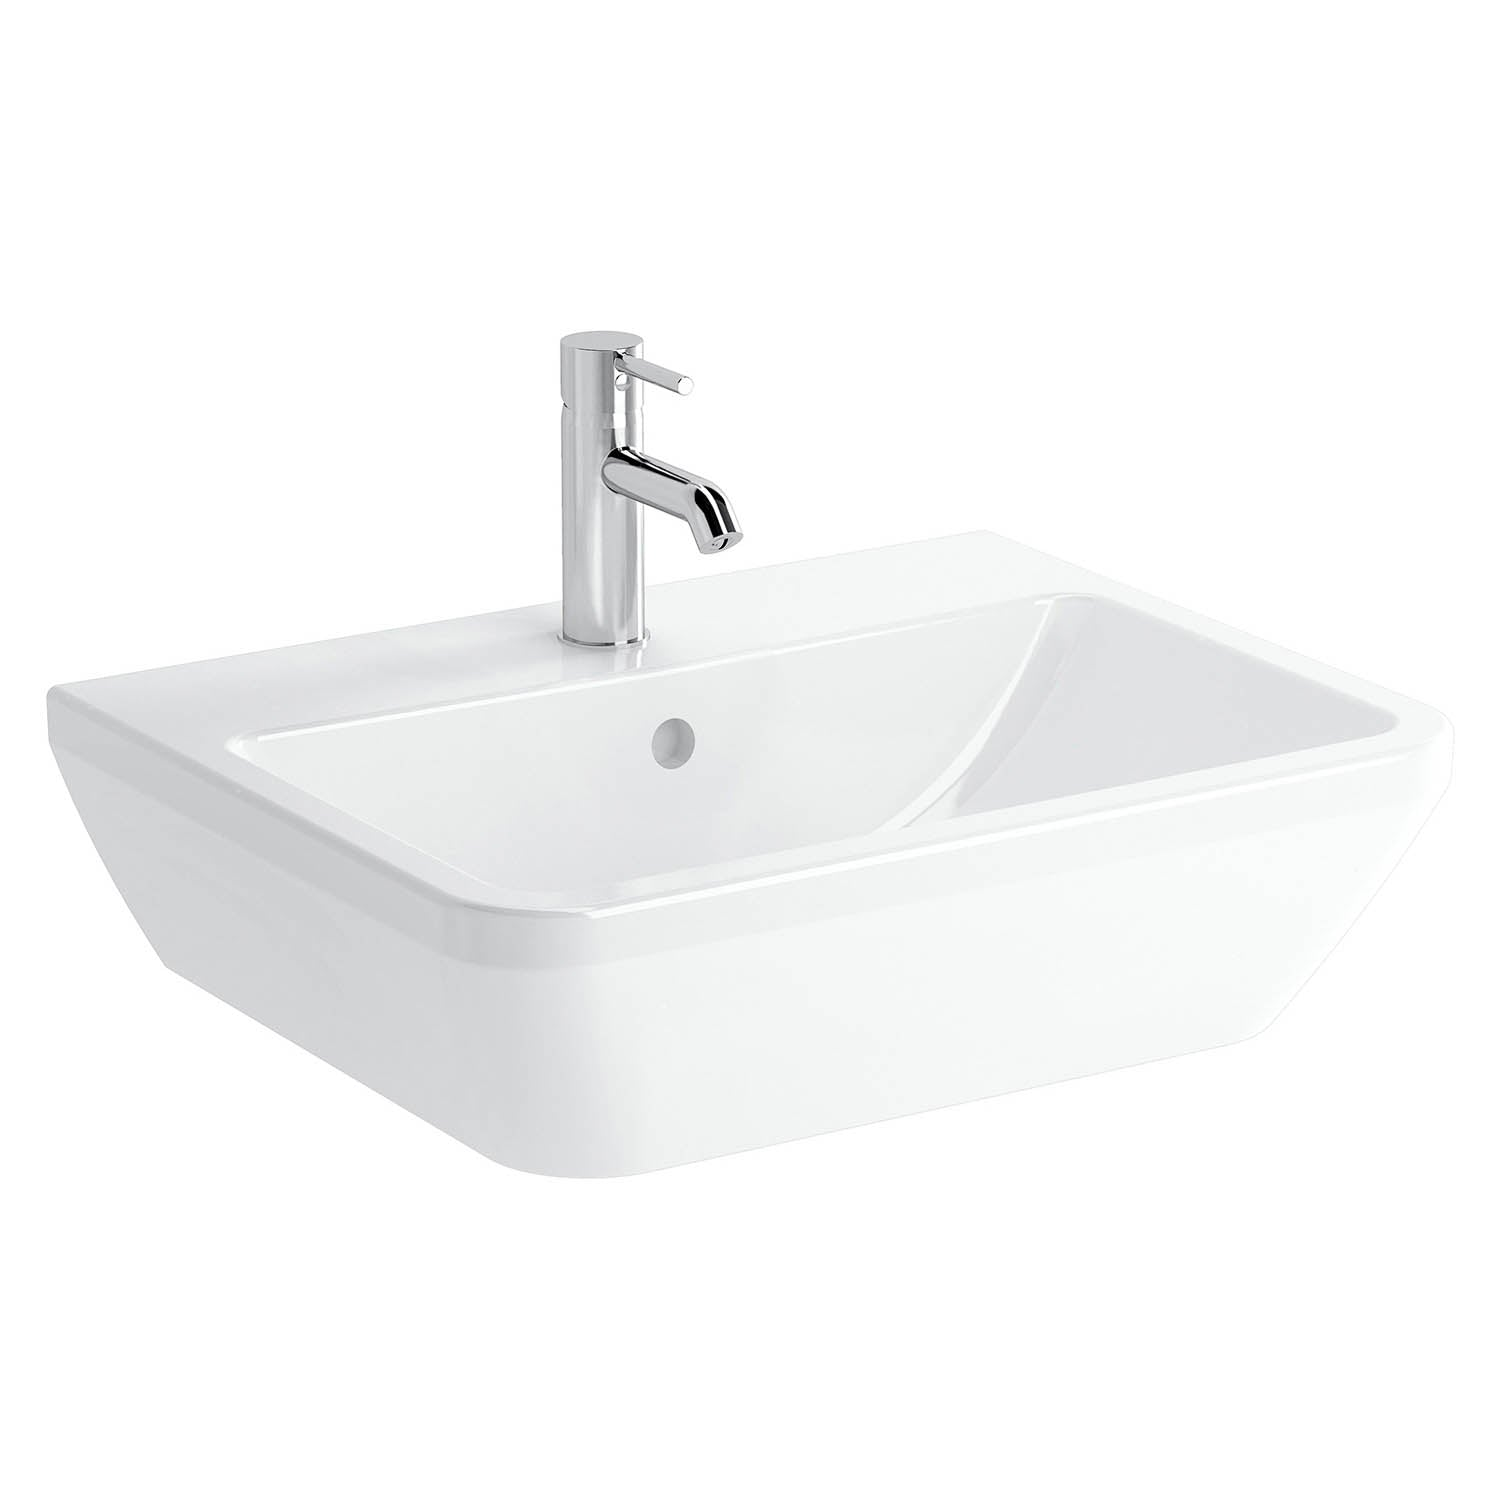 600mm Consilio Wall Hung Basin with one tap hole and an overflow on a white background